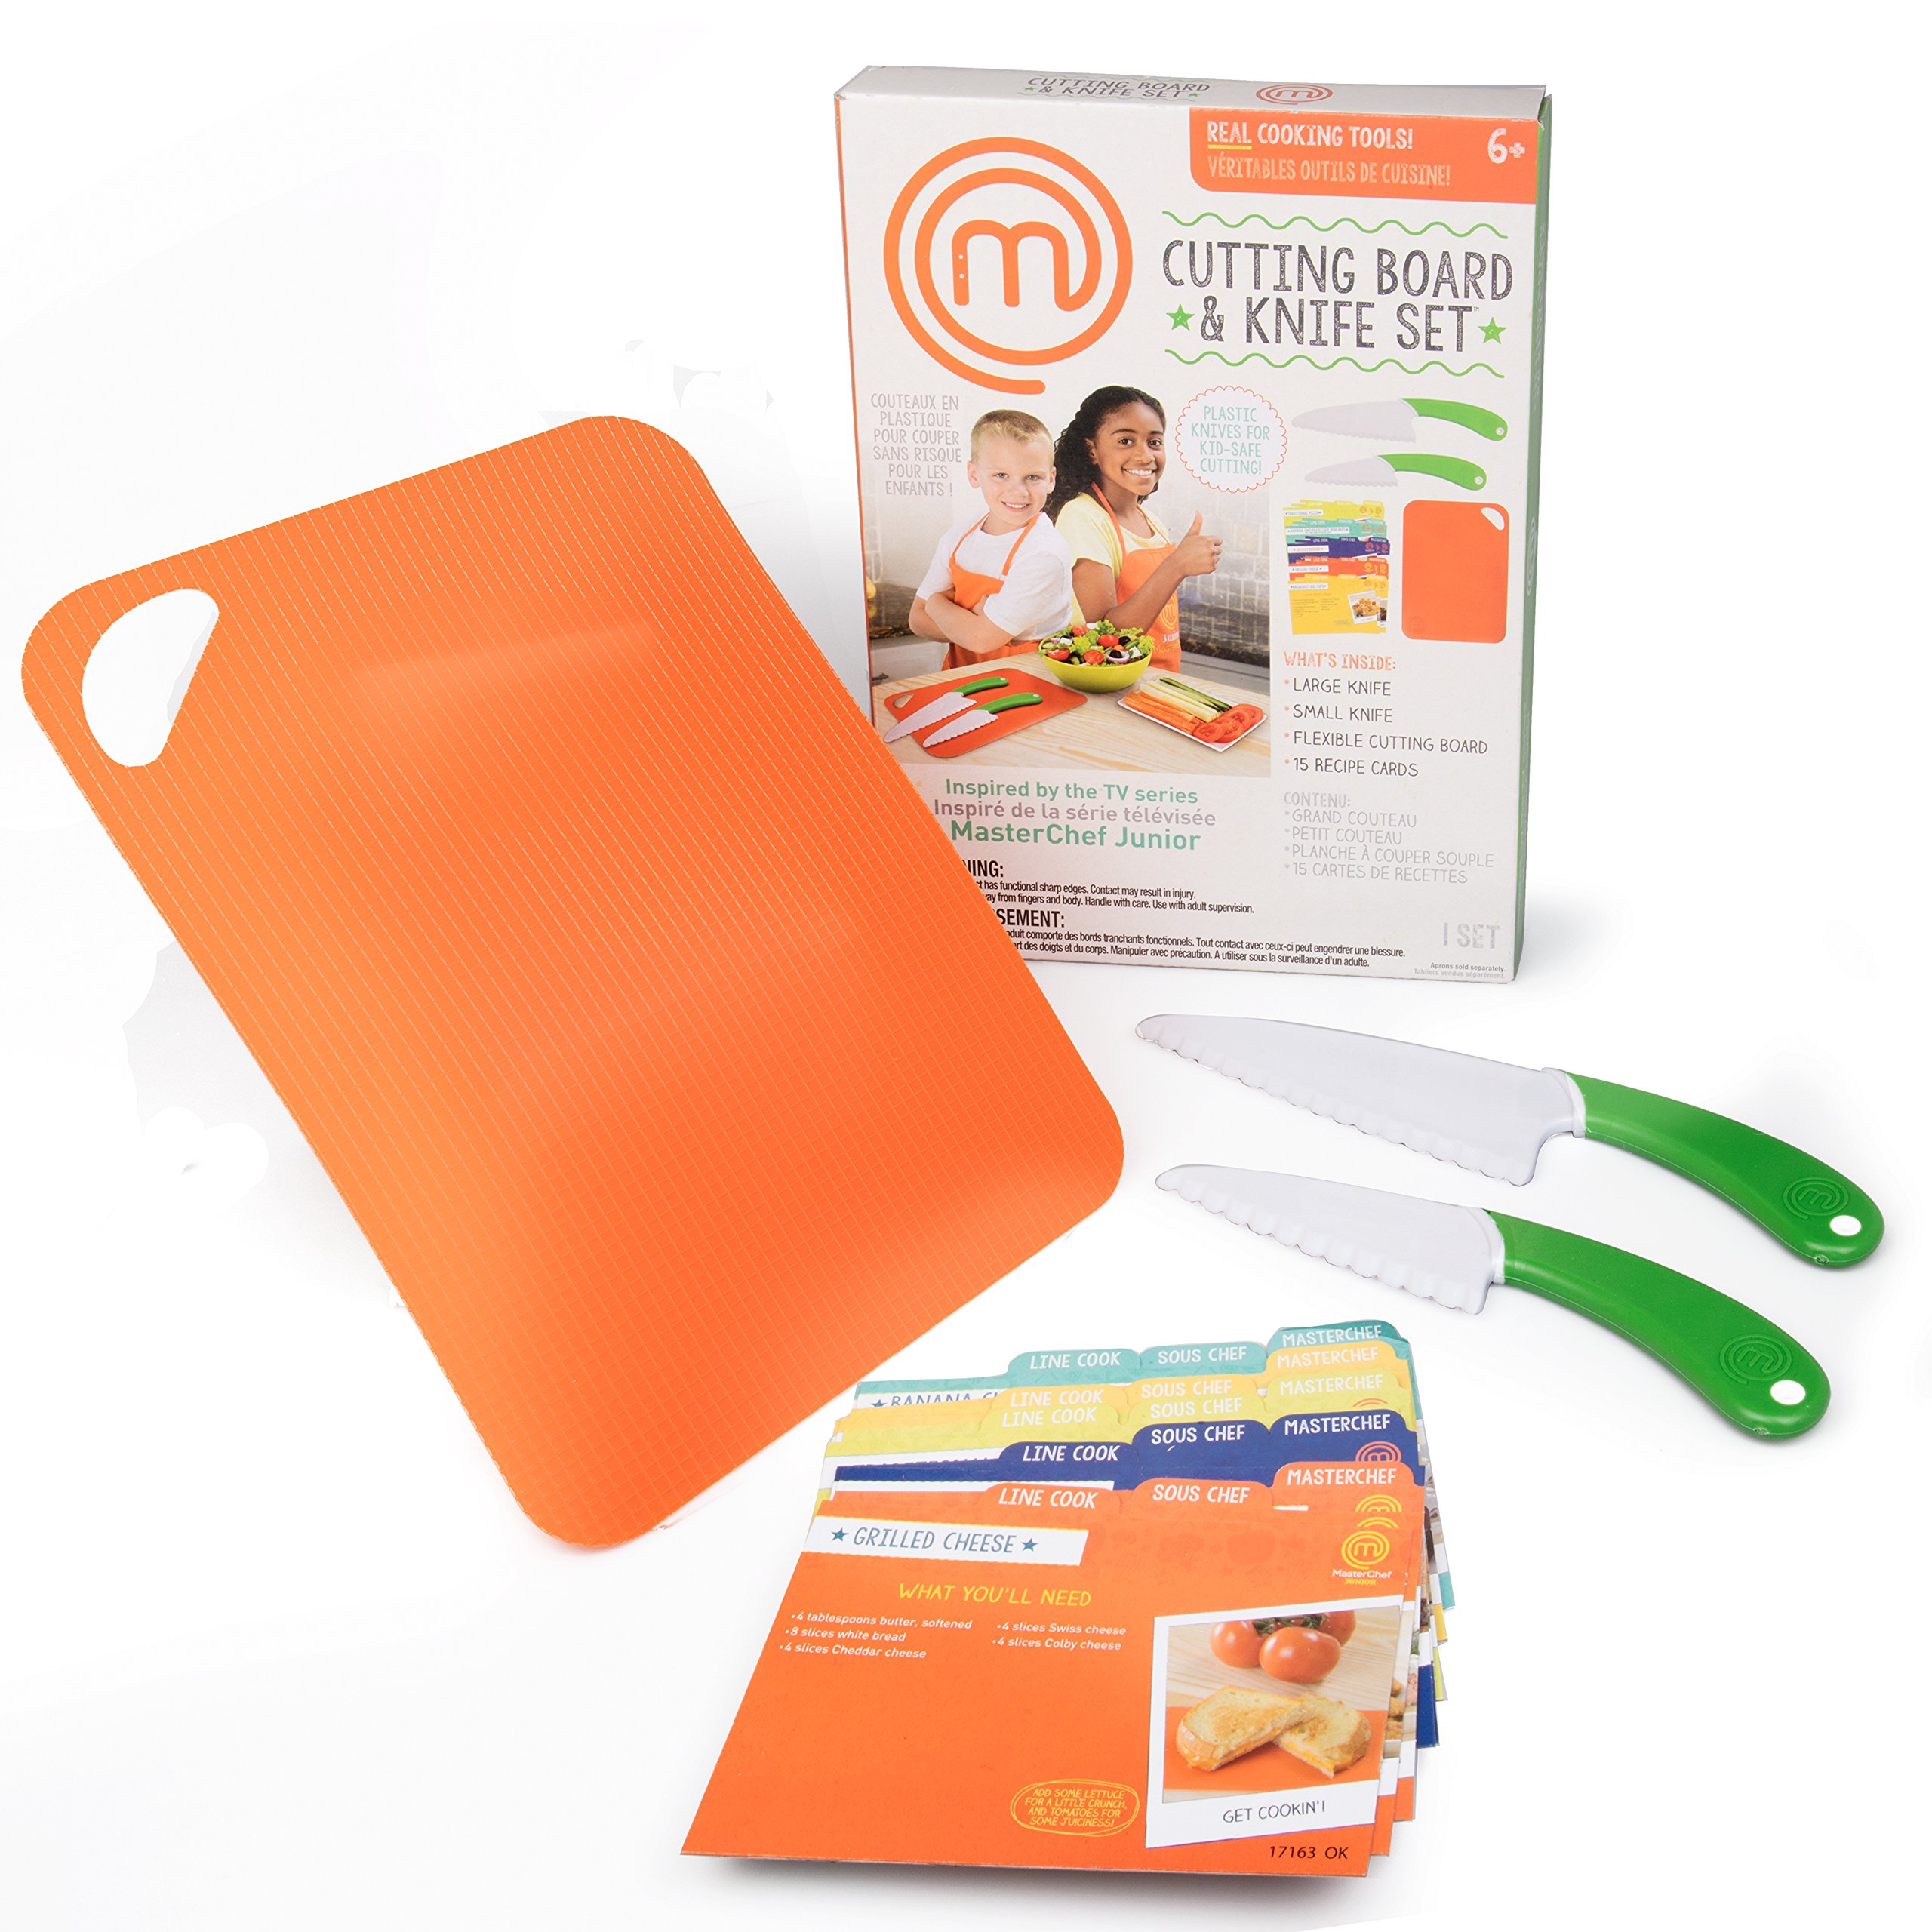 MasterChef Junior Knife and Cutting Board Set - Includes Real Cutting Tools for Kids and 15 Recipes by MasterChef Junior